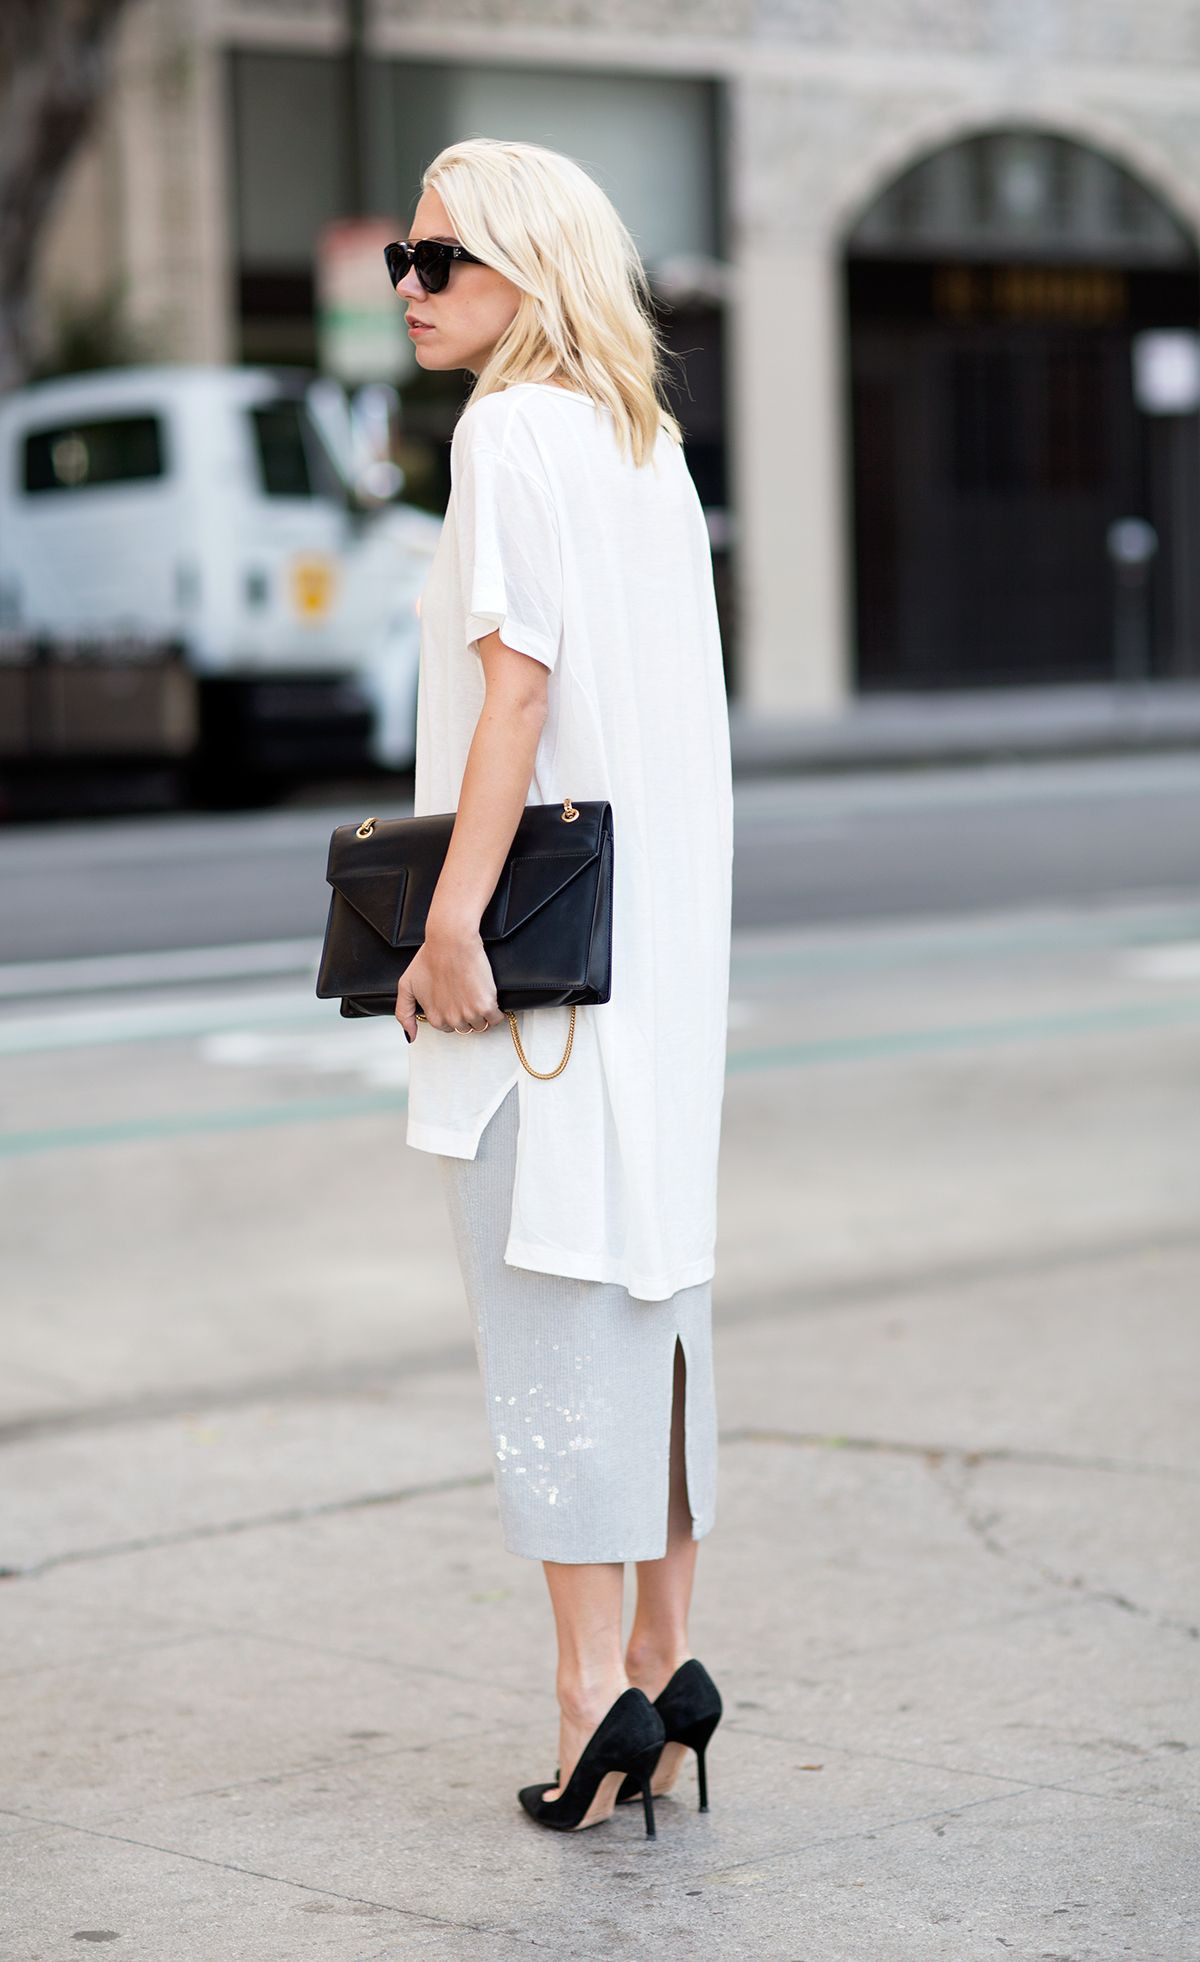 Layering blouse over dress black and white, street fashion